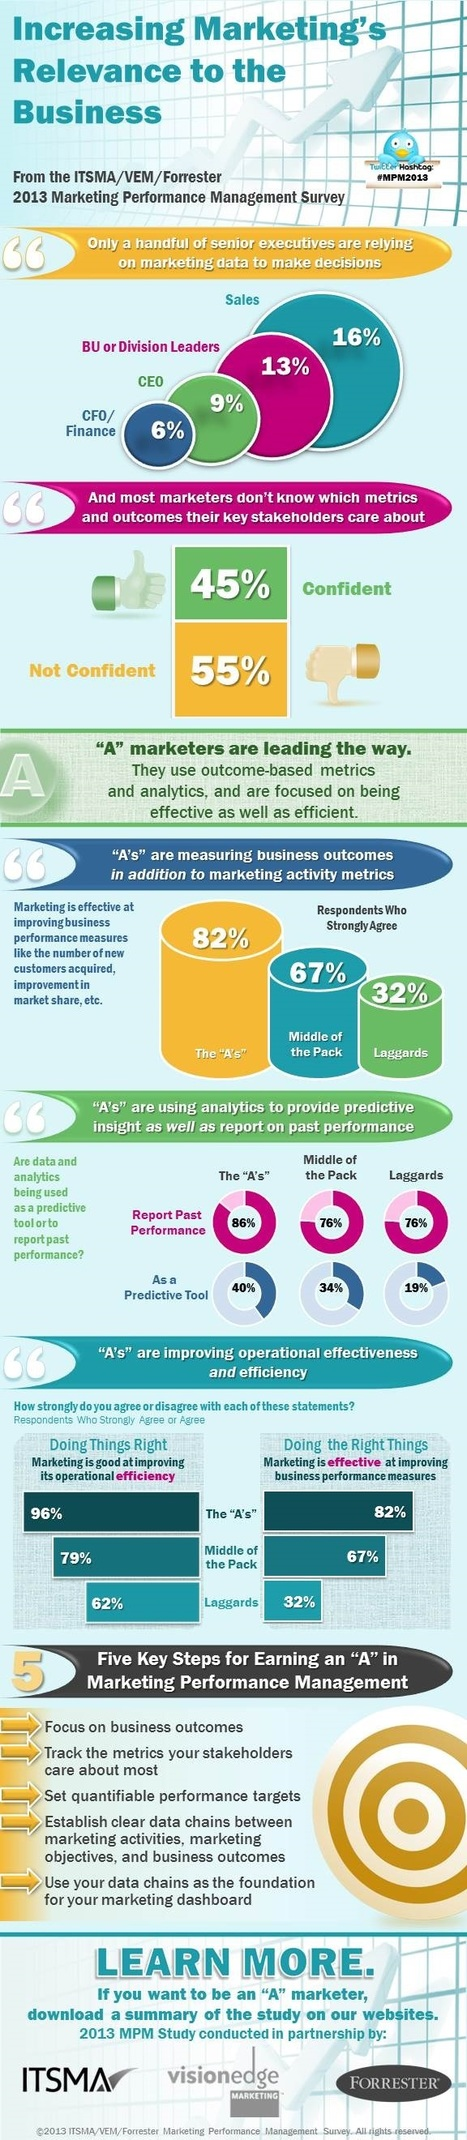 Increasing Marketing's Relevance to the Business [Infographic] - Profs | Social Marketing | Scoop.it